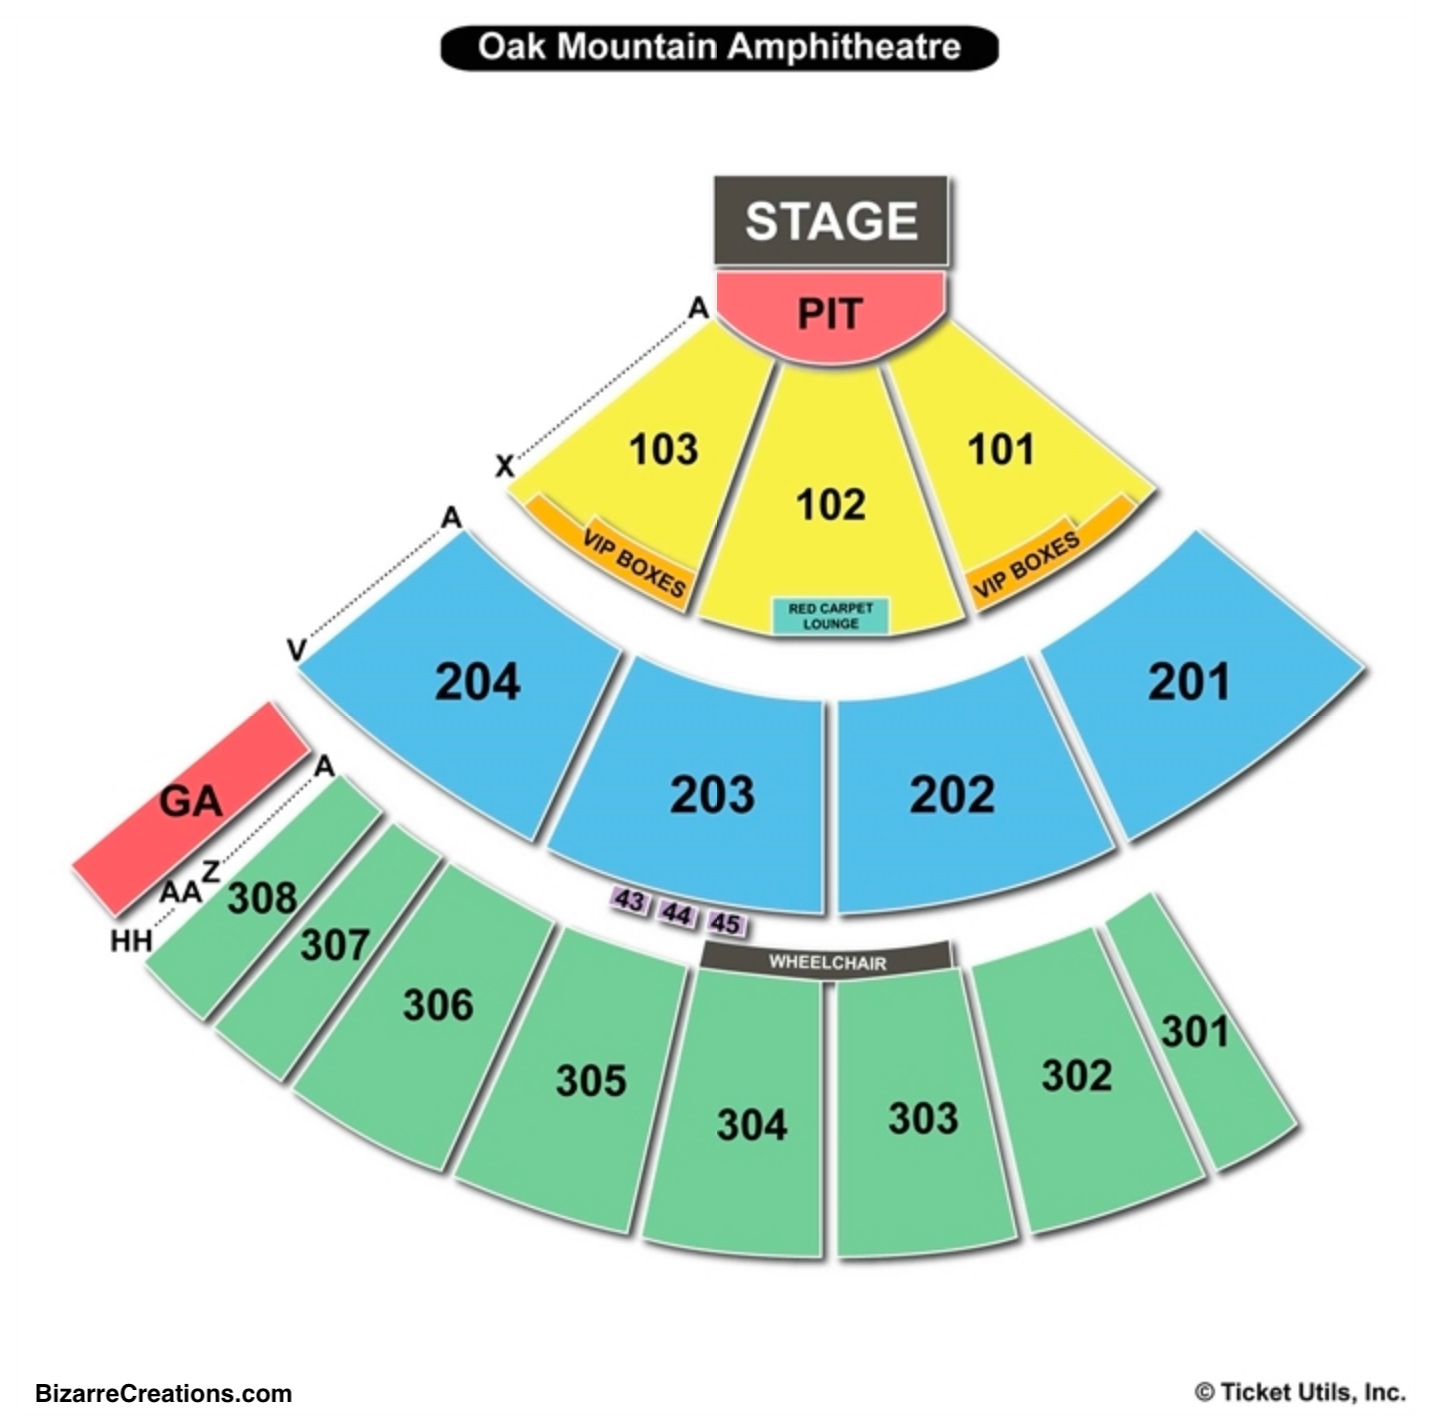 Pelham Amphitheater: Oak Mountain Amphitheatre Seating Chart